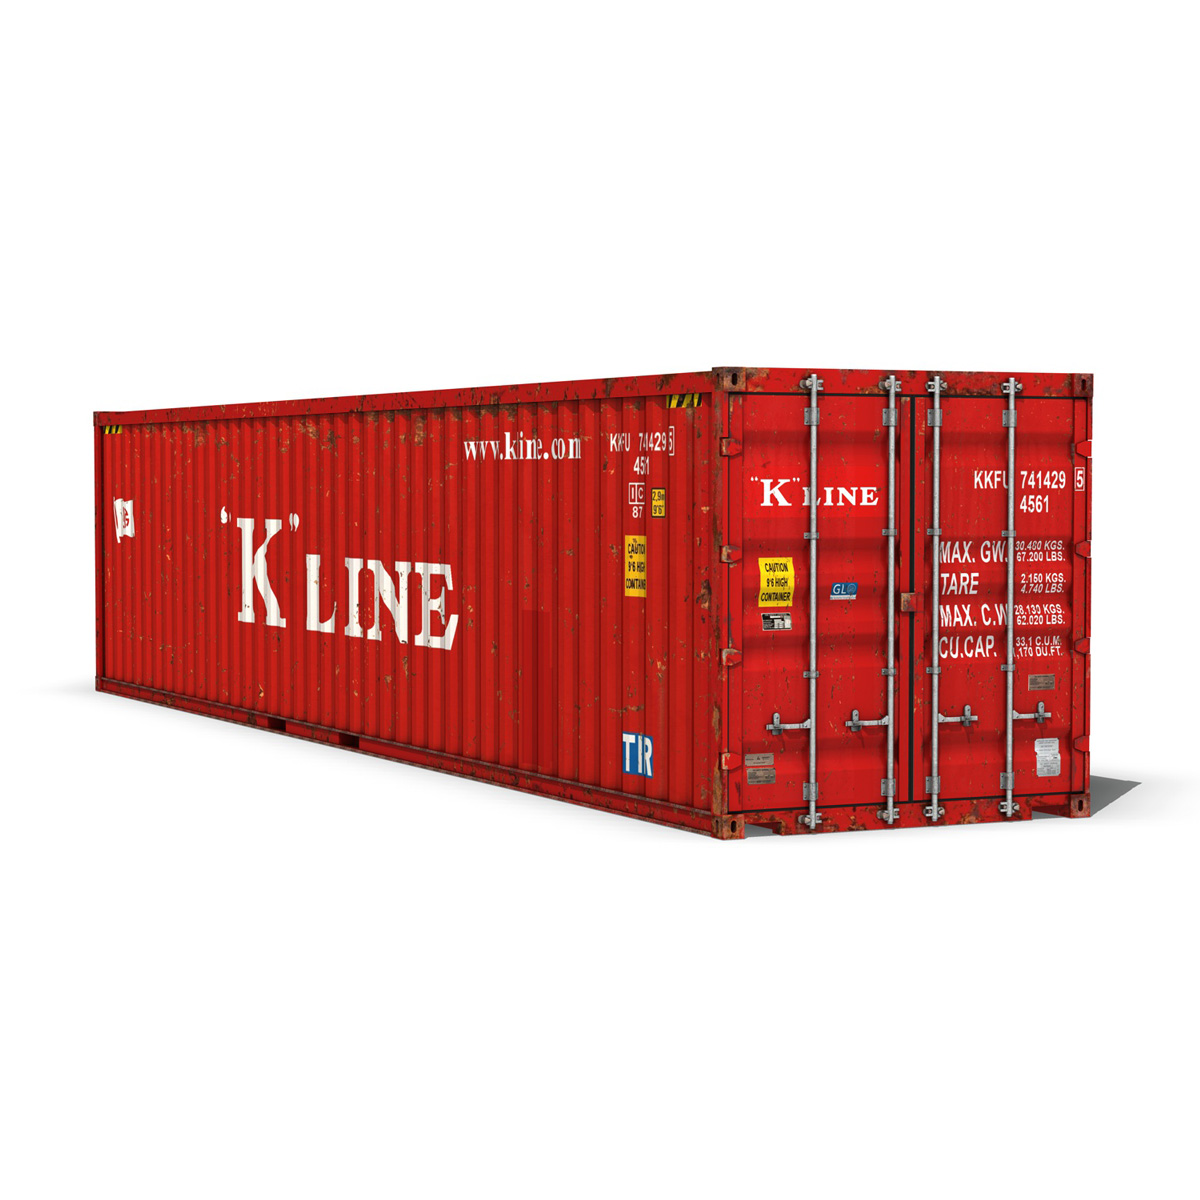 40ft shipping container – k line 3d model 3ds fbx lwo lw lws obj c4d 265117